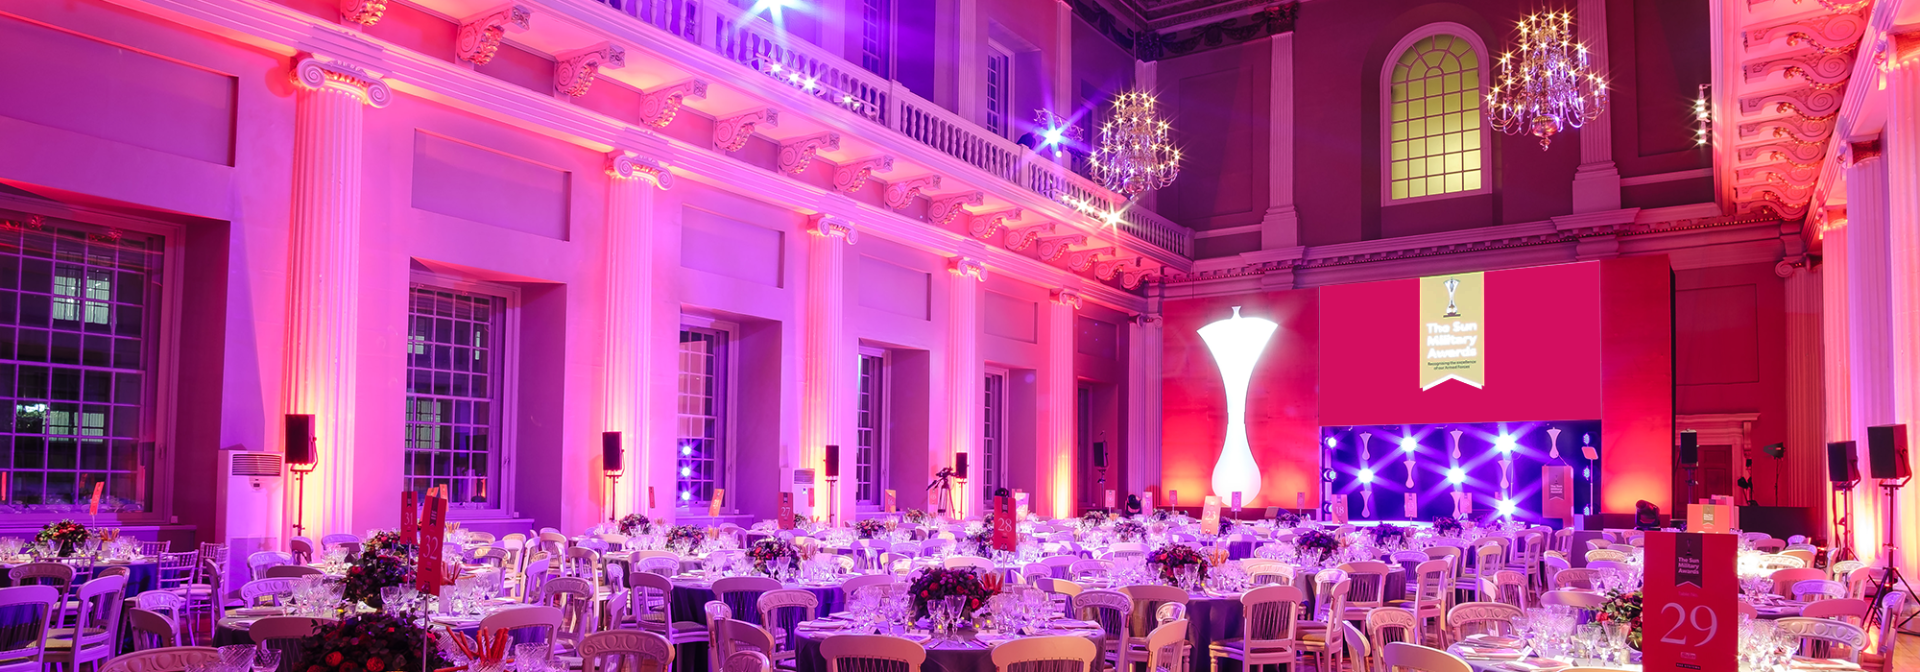 Banqueting House - Header Image - Gallery 1.png